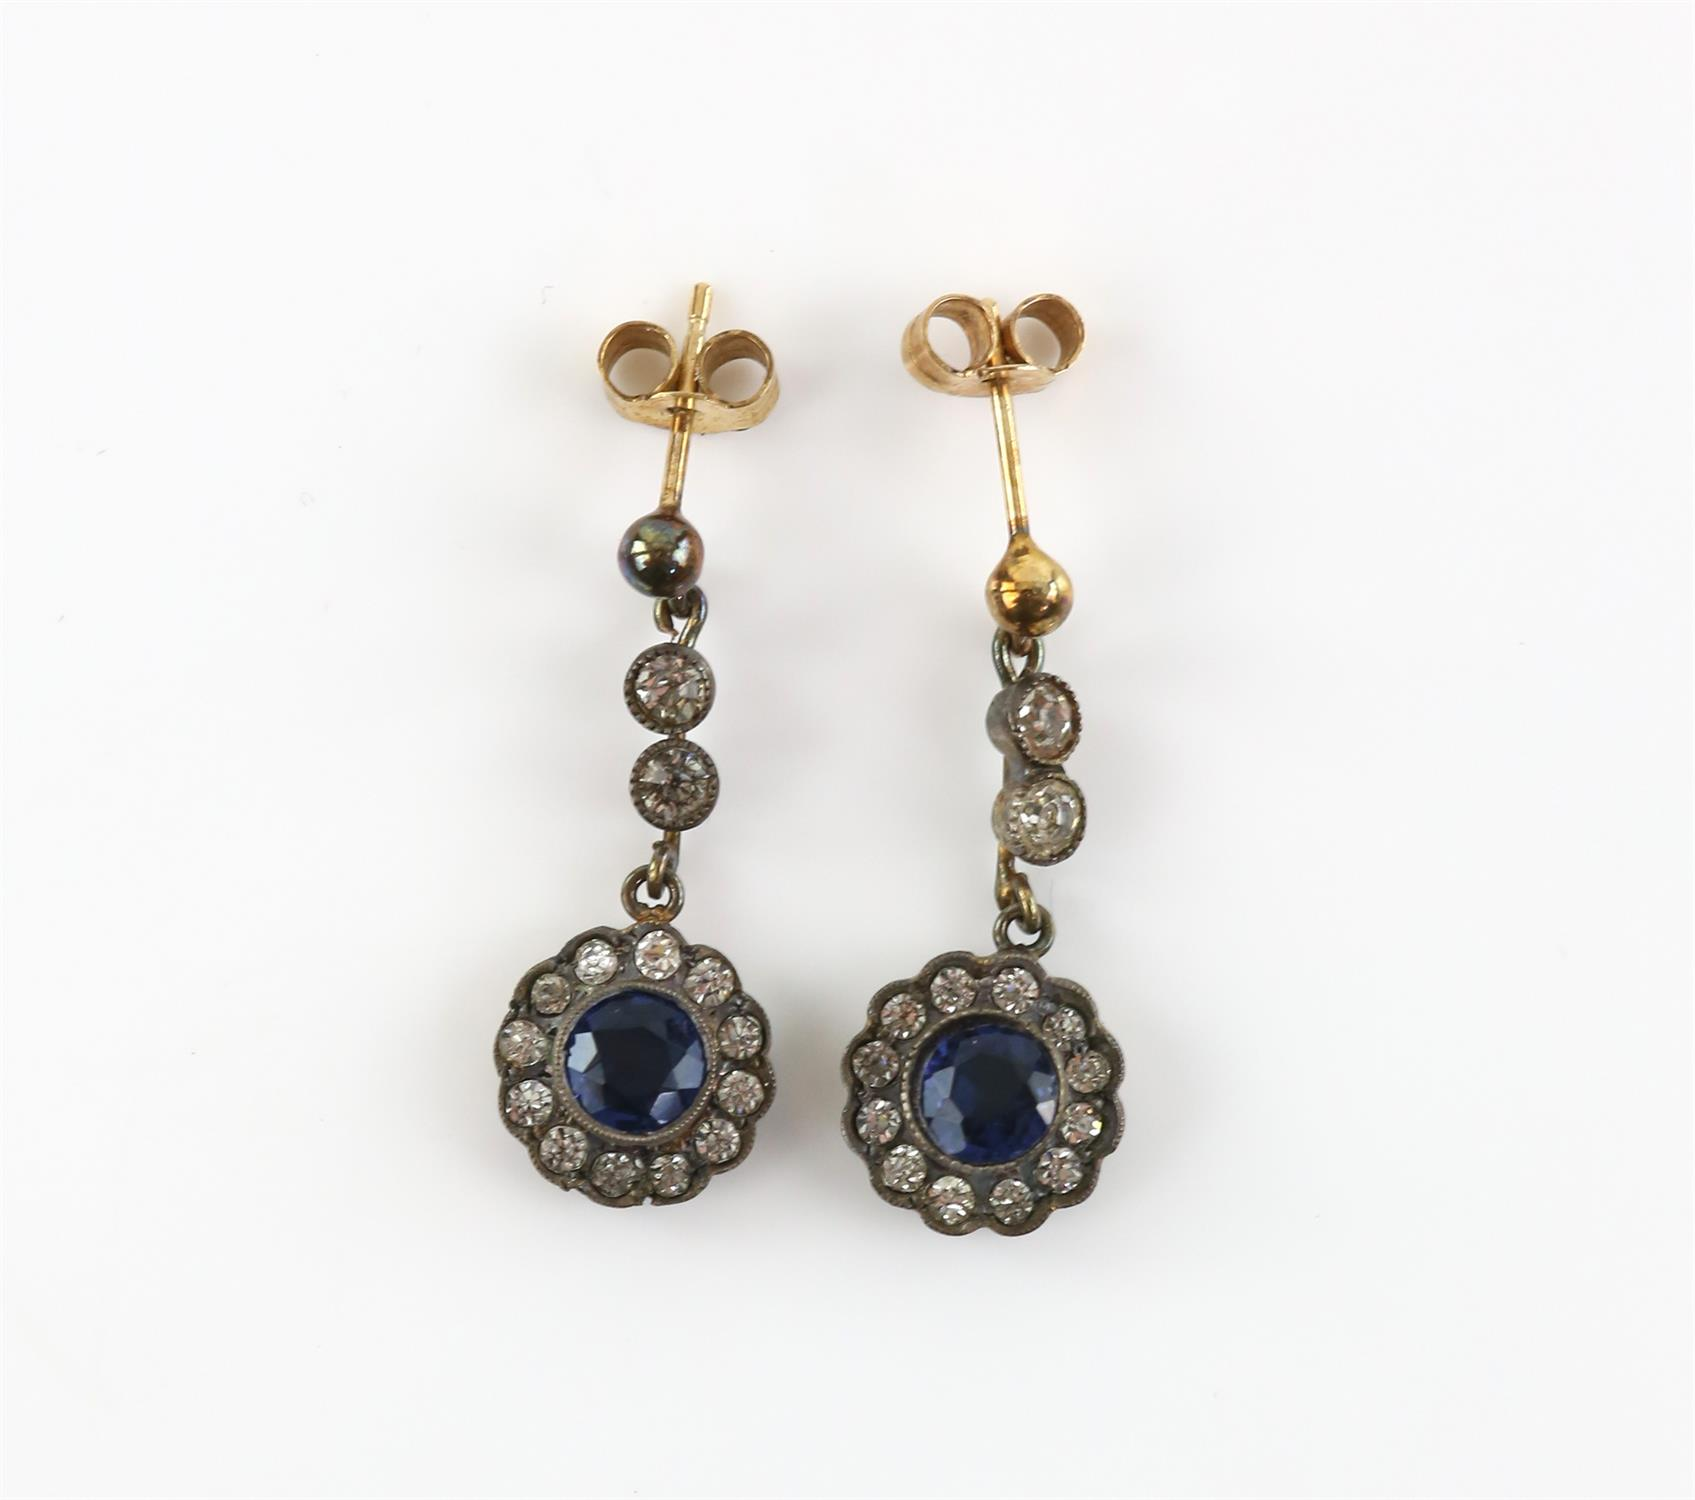 A pair of mother of pearl cufflinks, mounted in 9 ct yellow gold, with a pair of white and blue